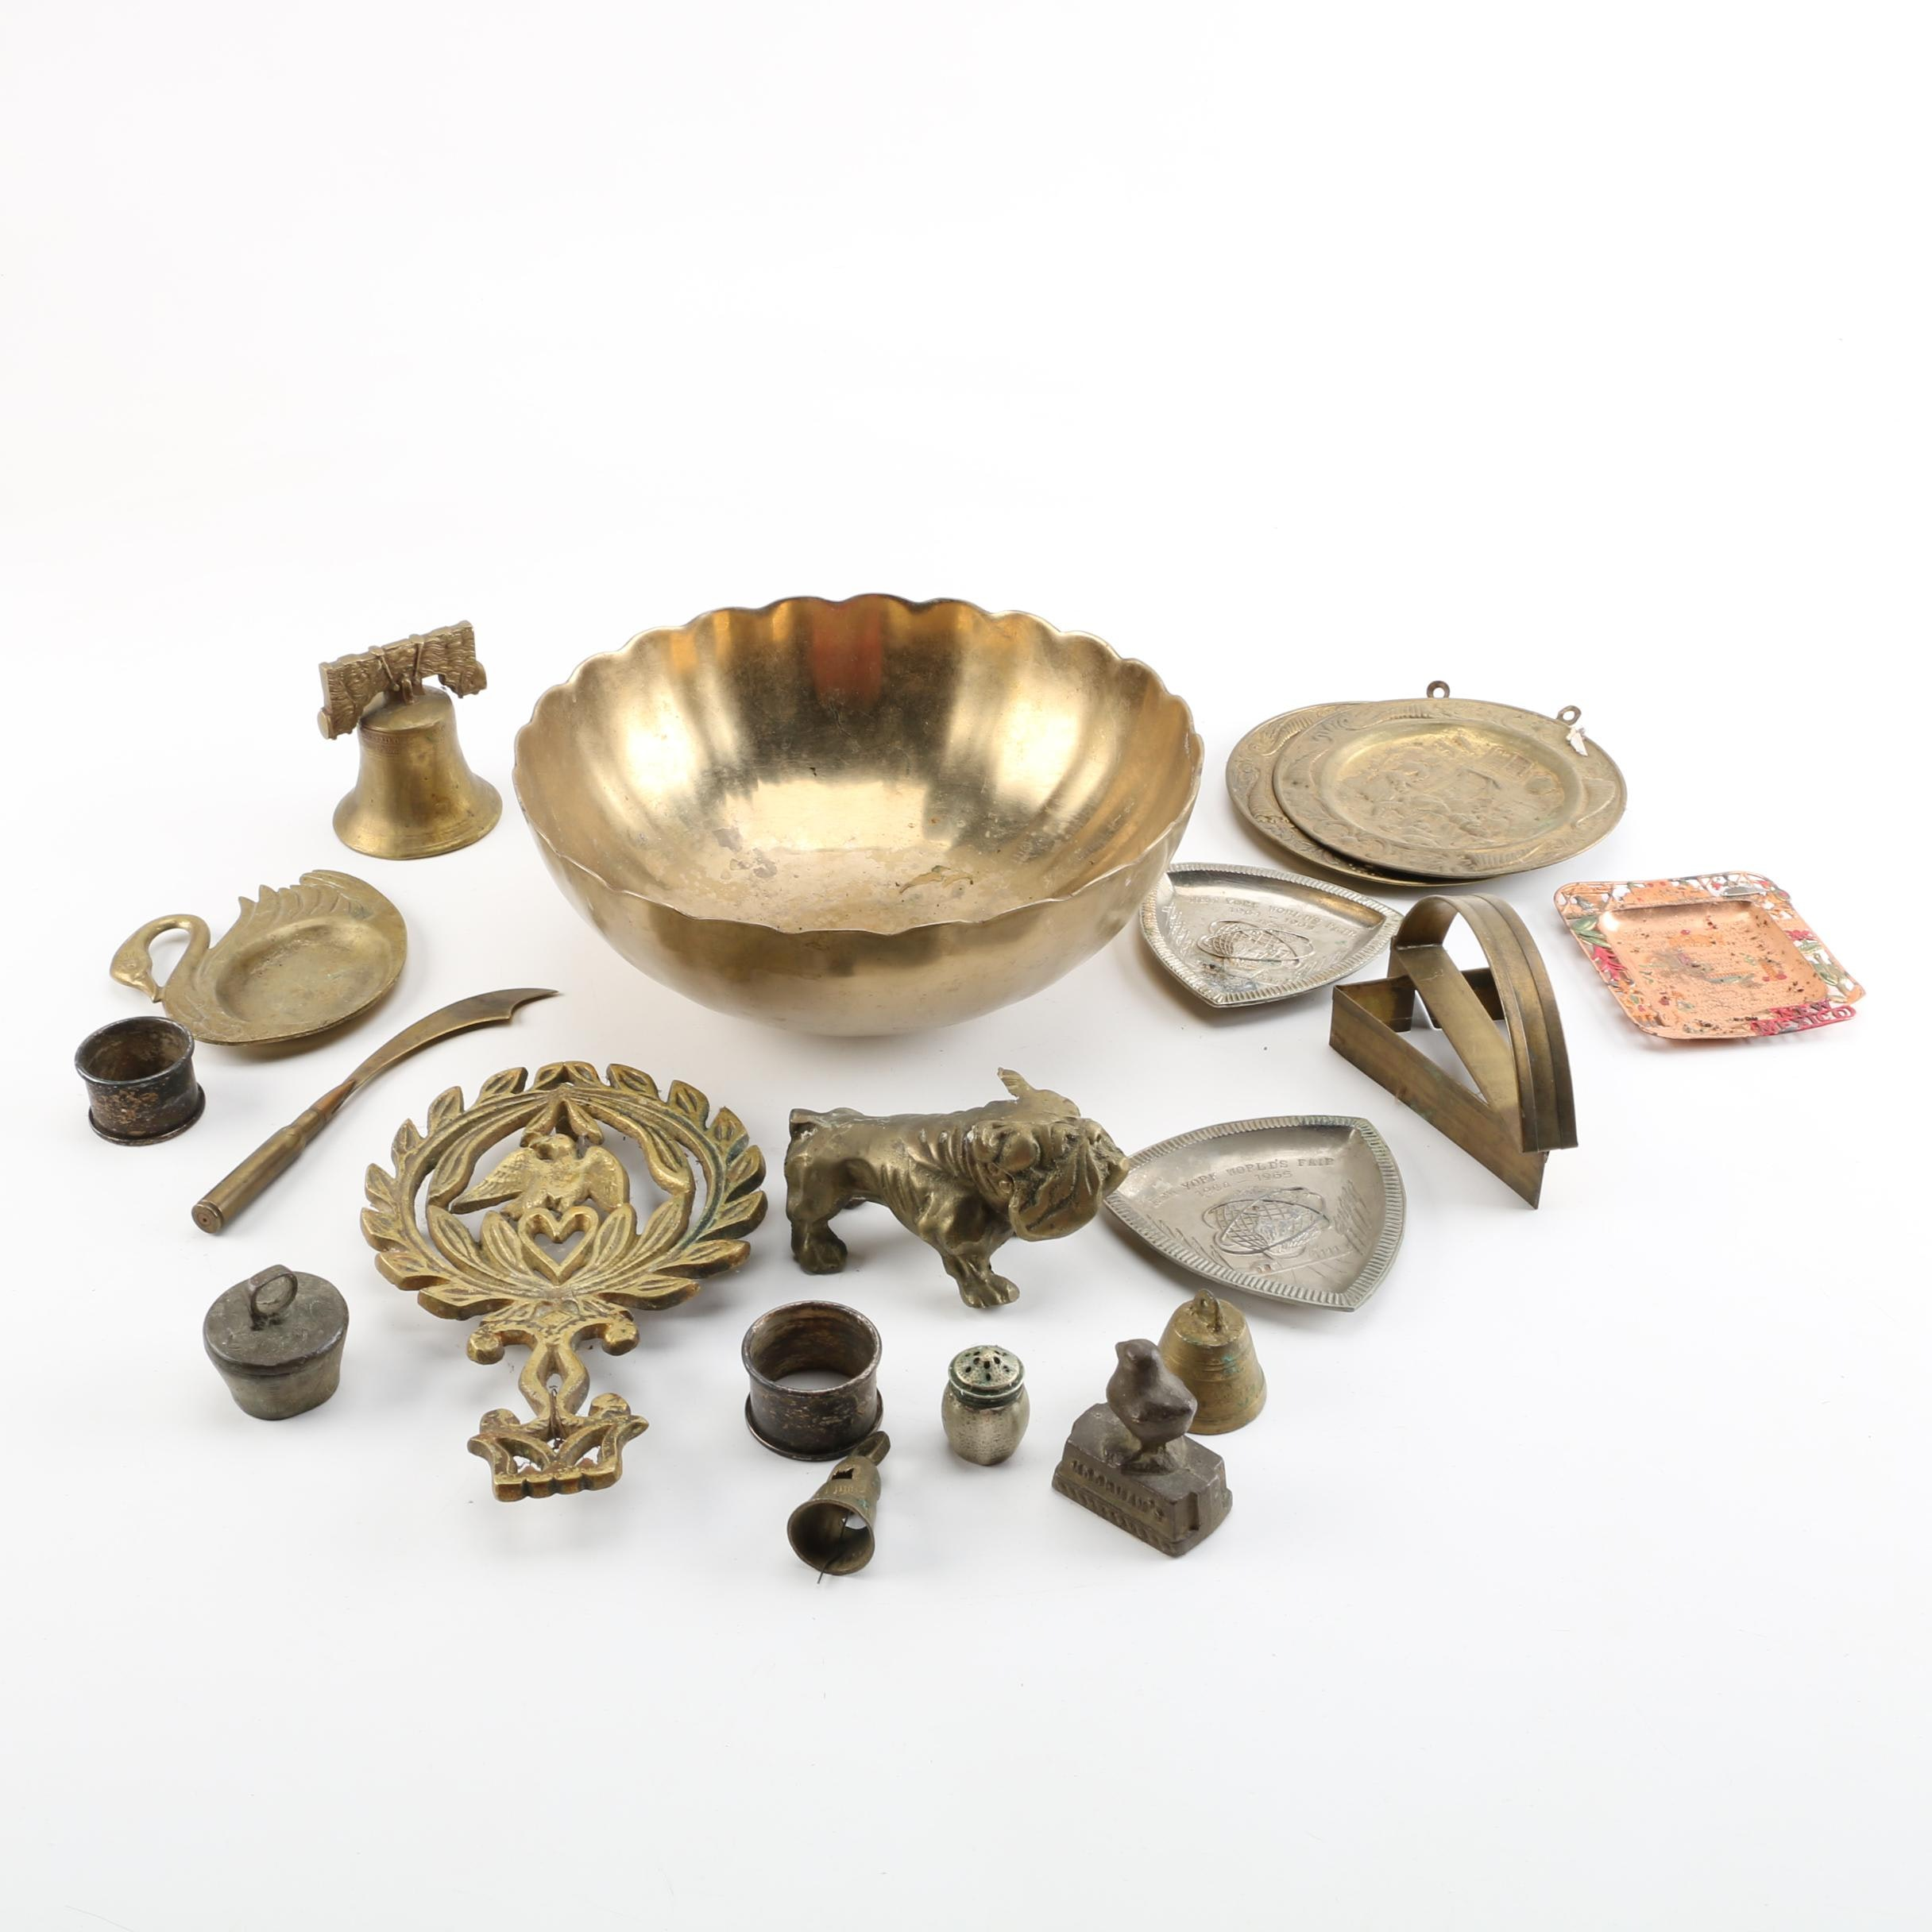 Assorted Metal Miniatures, Souvenir Trinket Dishes and More